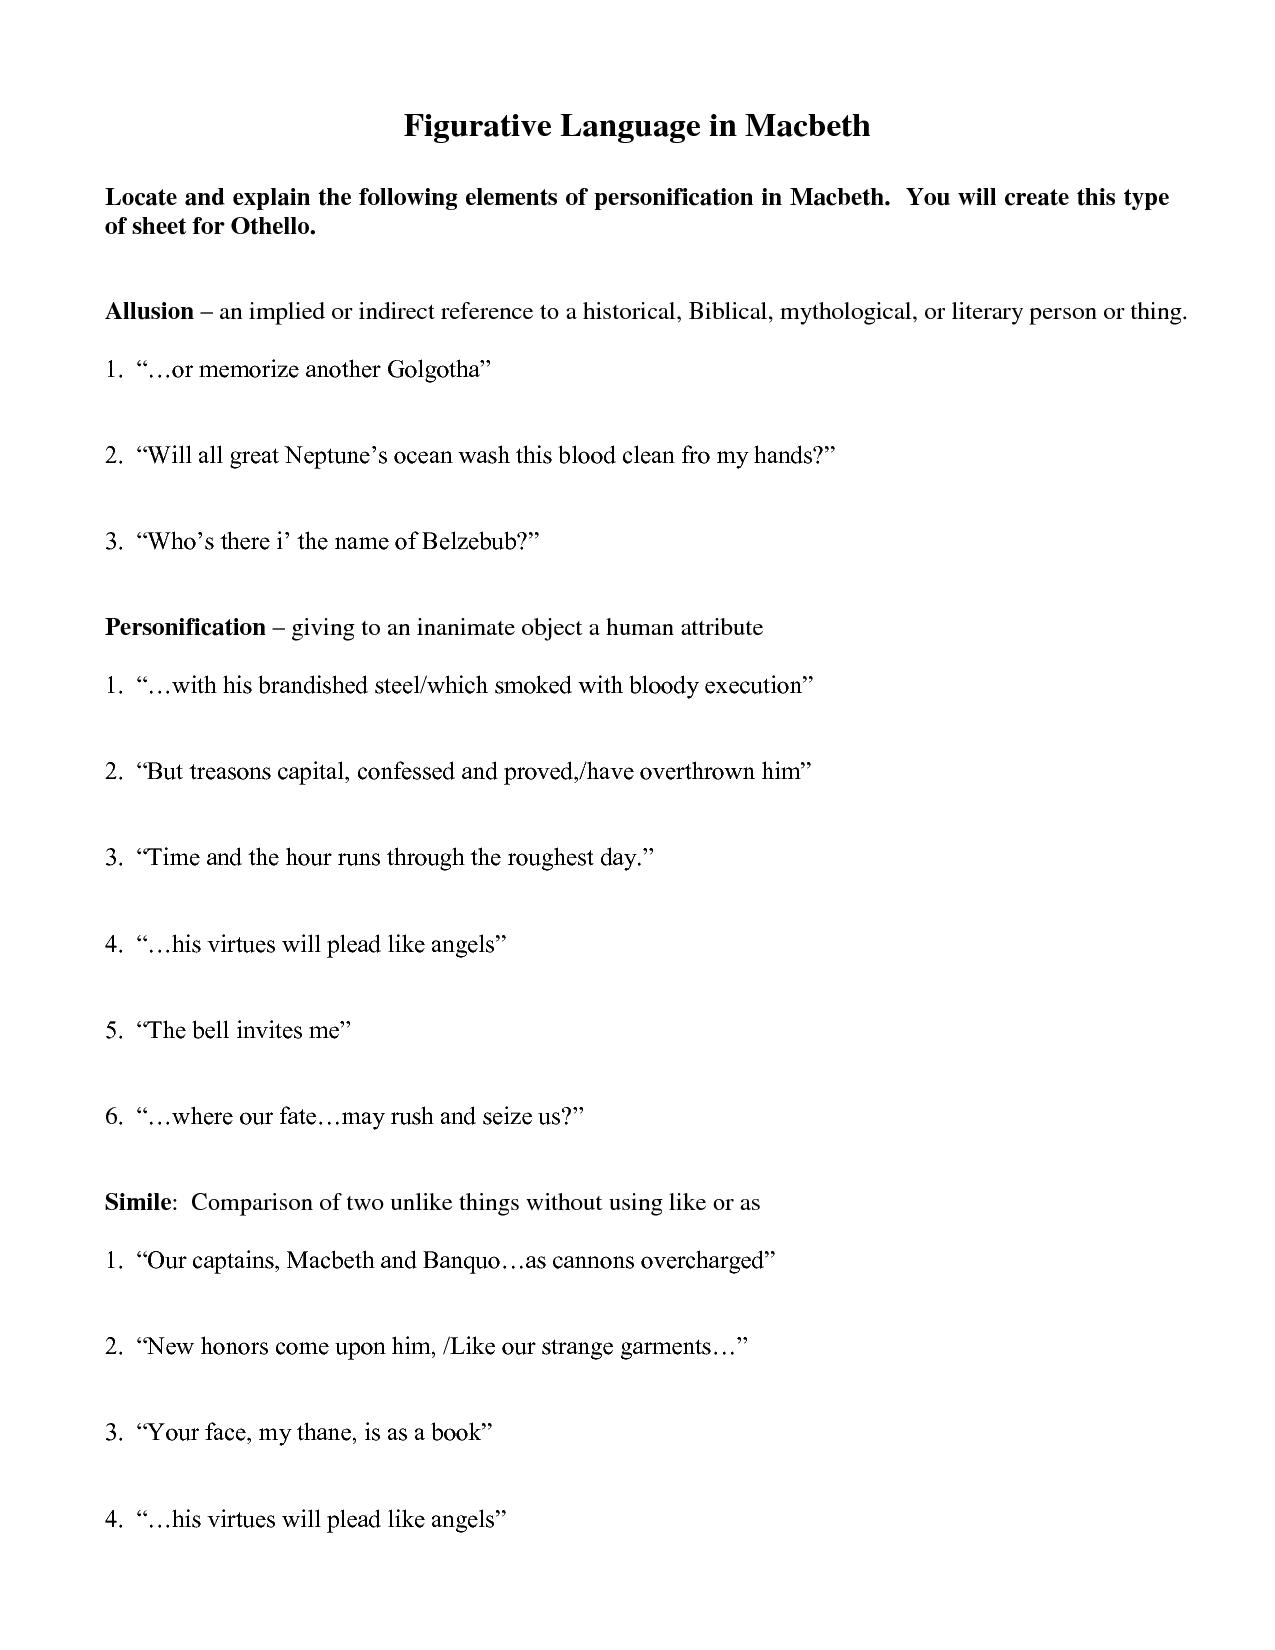 15 Best Images Of Figurative Language Worksheet 1 Answers